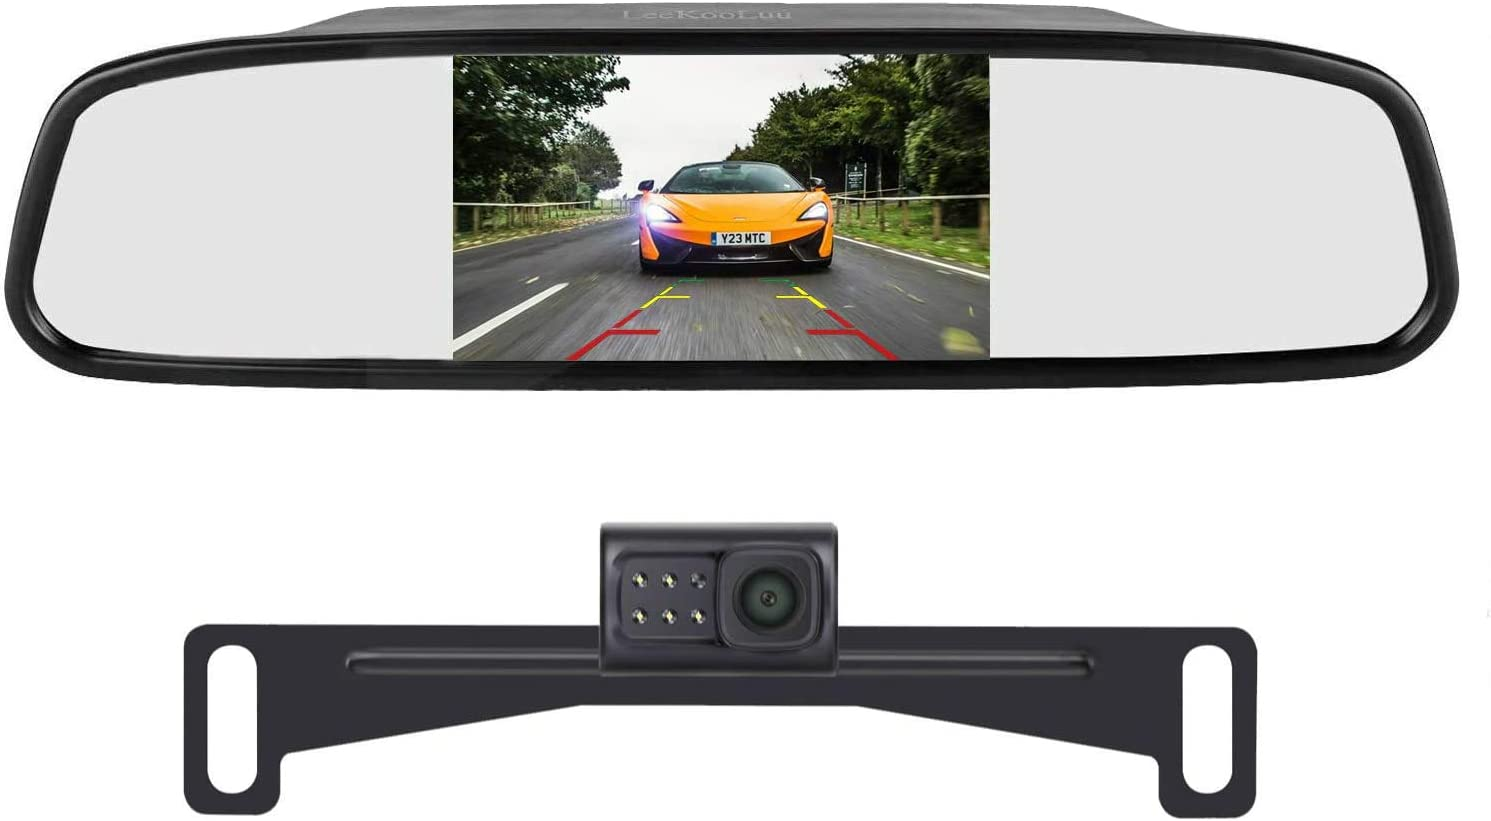 LeeKooLuu HD 720P Backup Camera and 4.3 Mirror Monitor Kit for Cars Vans Trucks Single Power Rear View System Driving Reversing Use IP69 Waterproof Night Vision